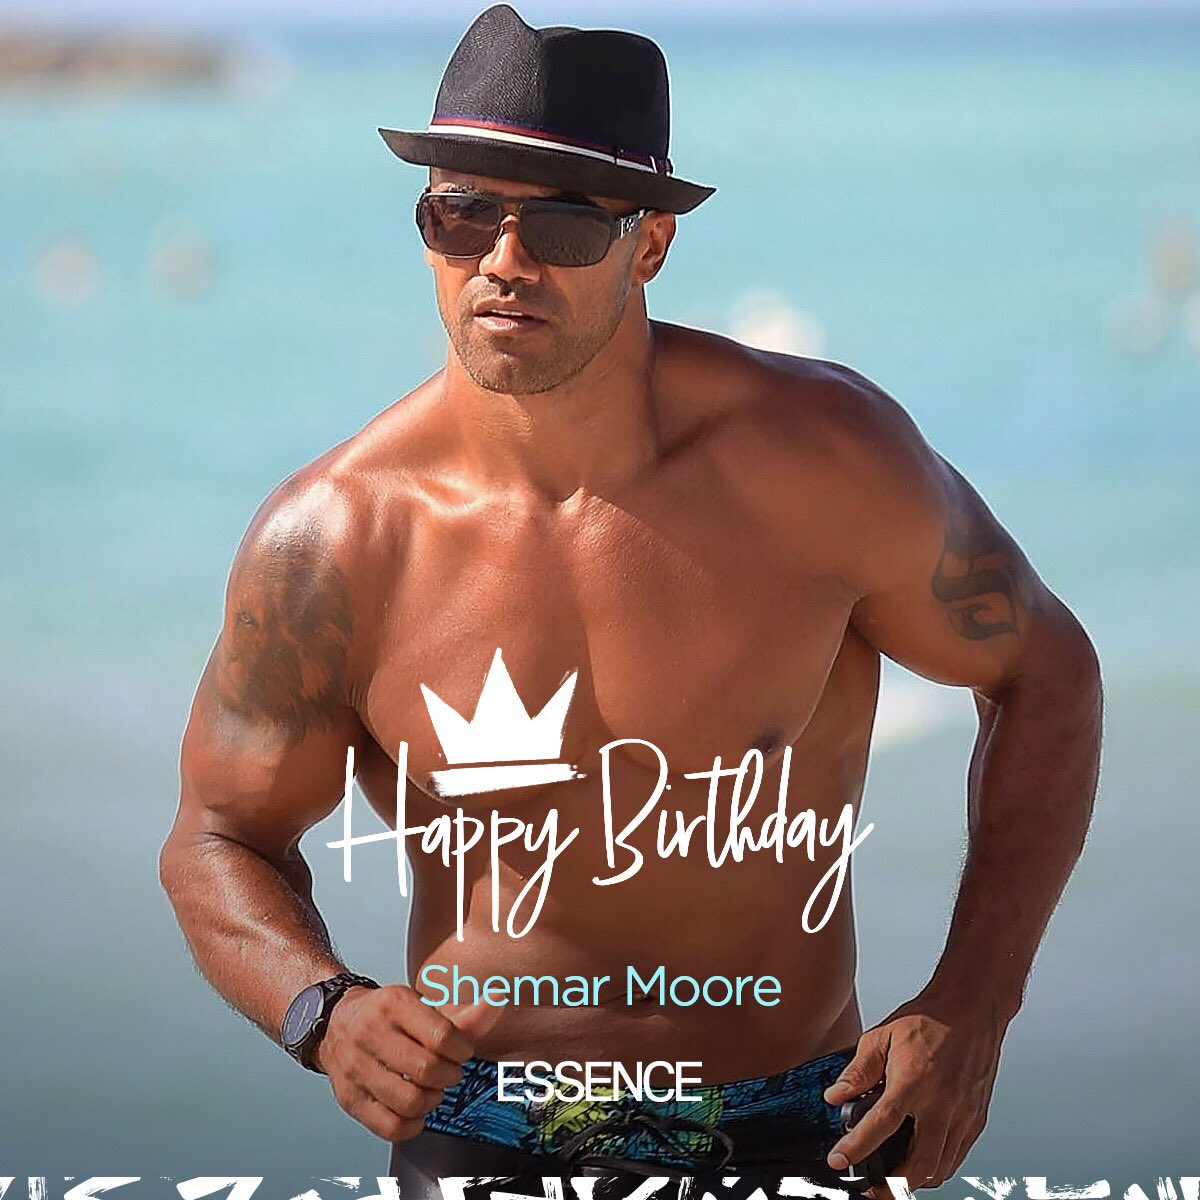 49 never looked so fine 😍. Happy Birthday, @shemarmoore 🎈! Do you remember the first film, show or campaign you saw the thirst-inducing Mr. Moore in?